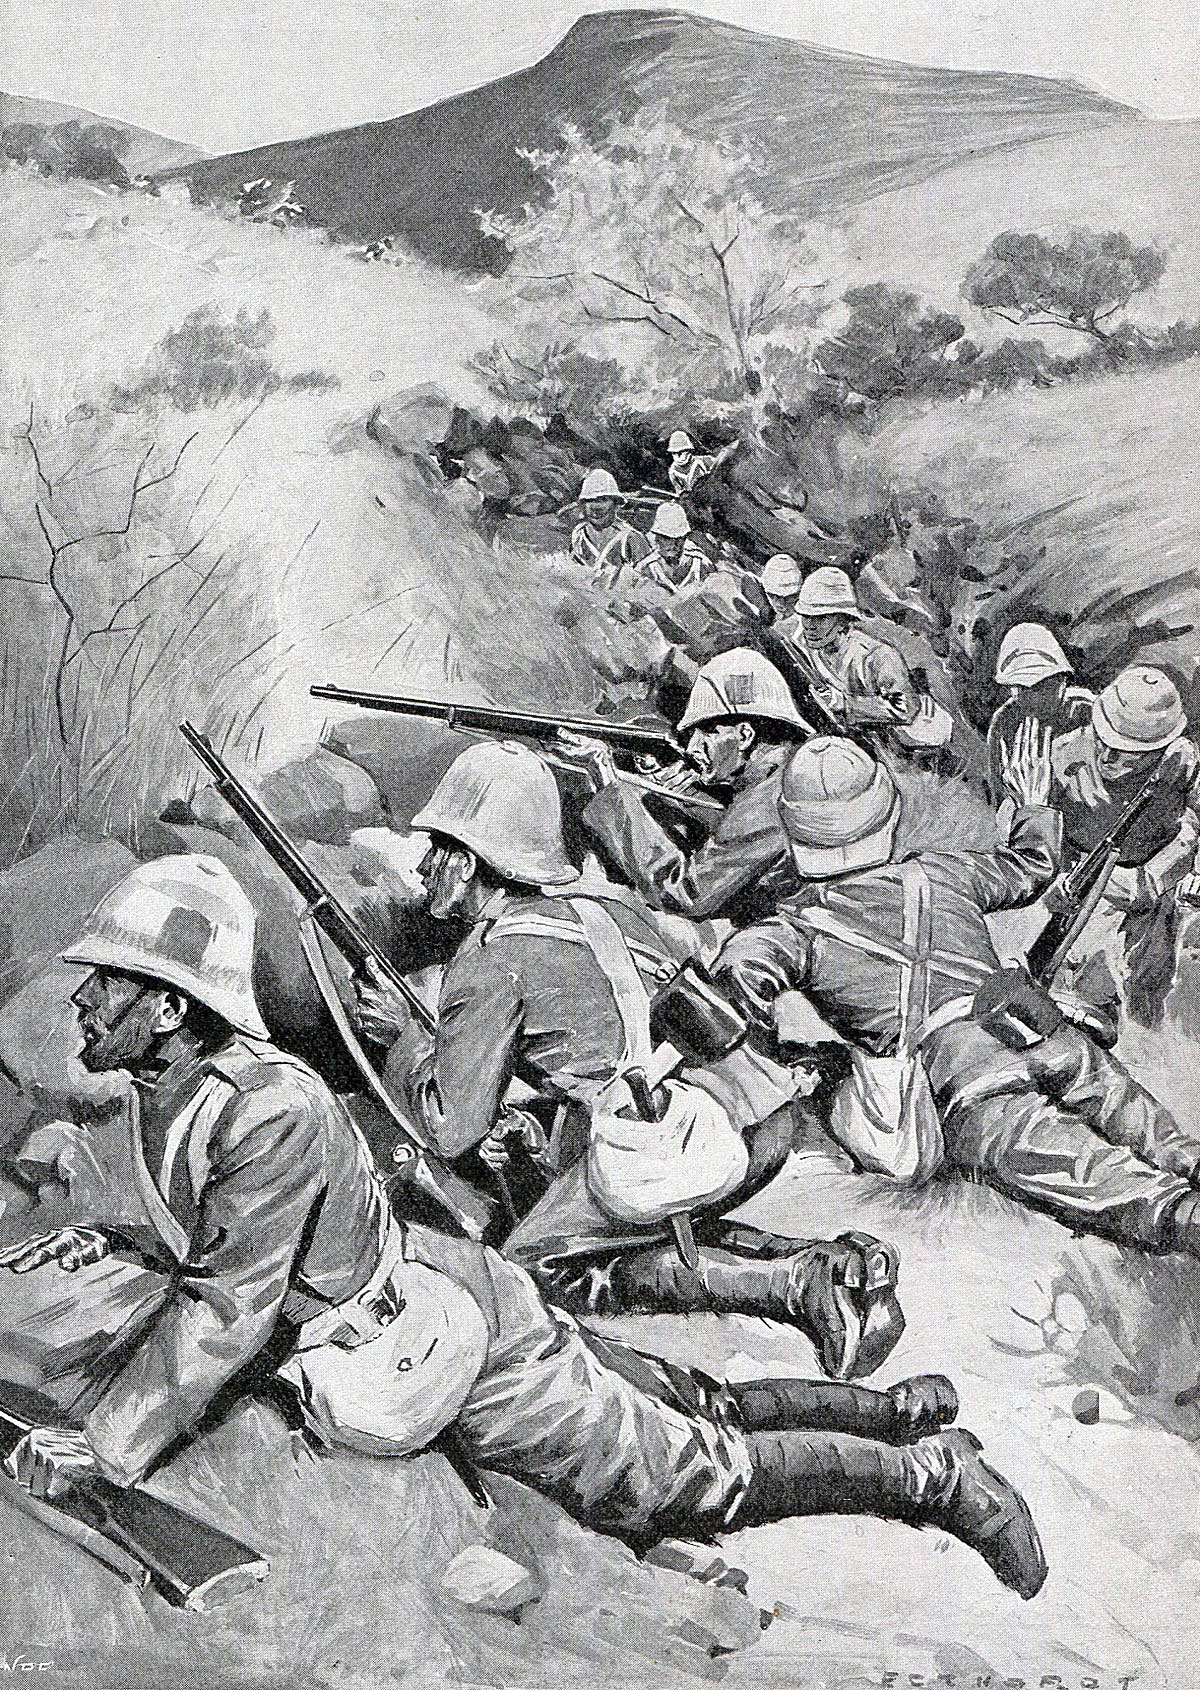 Queen's West Surrey Regiment on Monte Cristo: Battle of Pieters, fought from 14th February 1900 in the Great Boer War: picture by Oscar Eckhardt